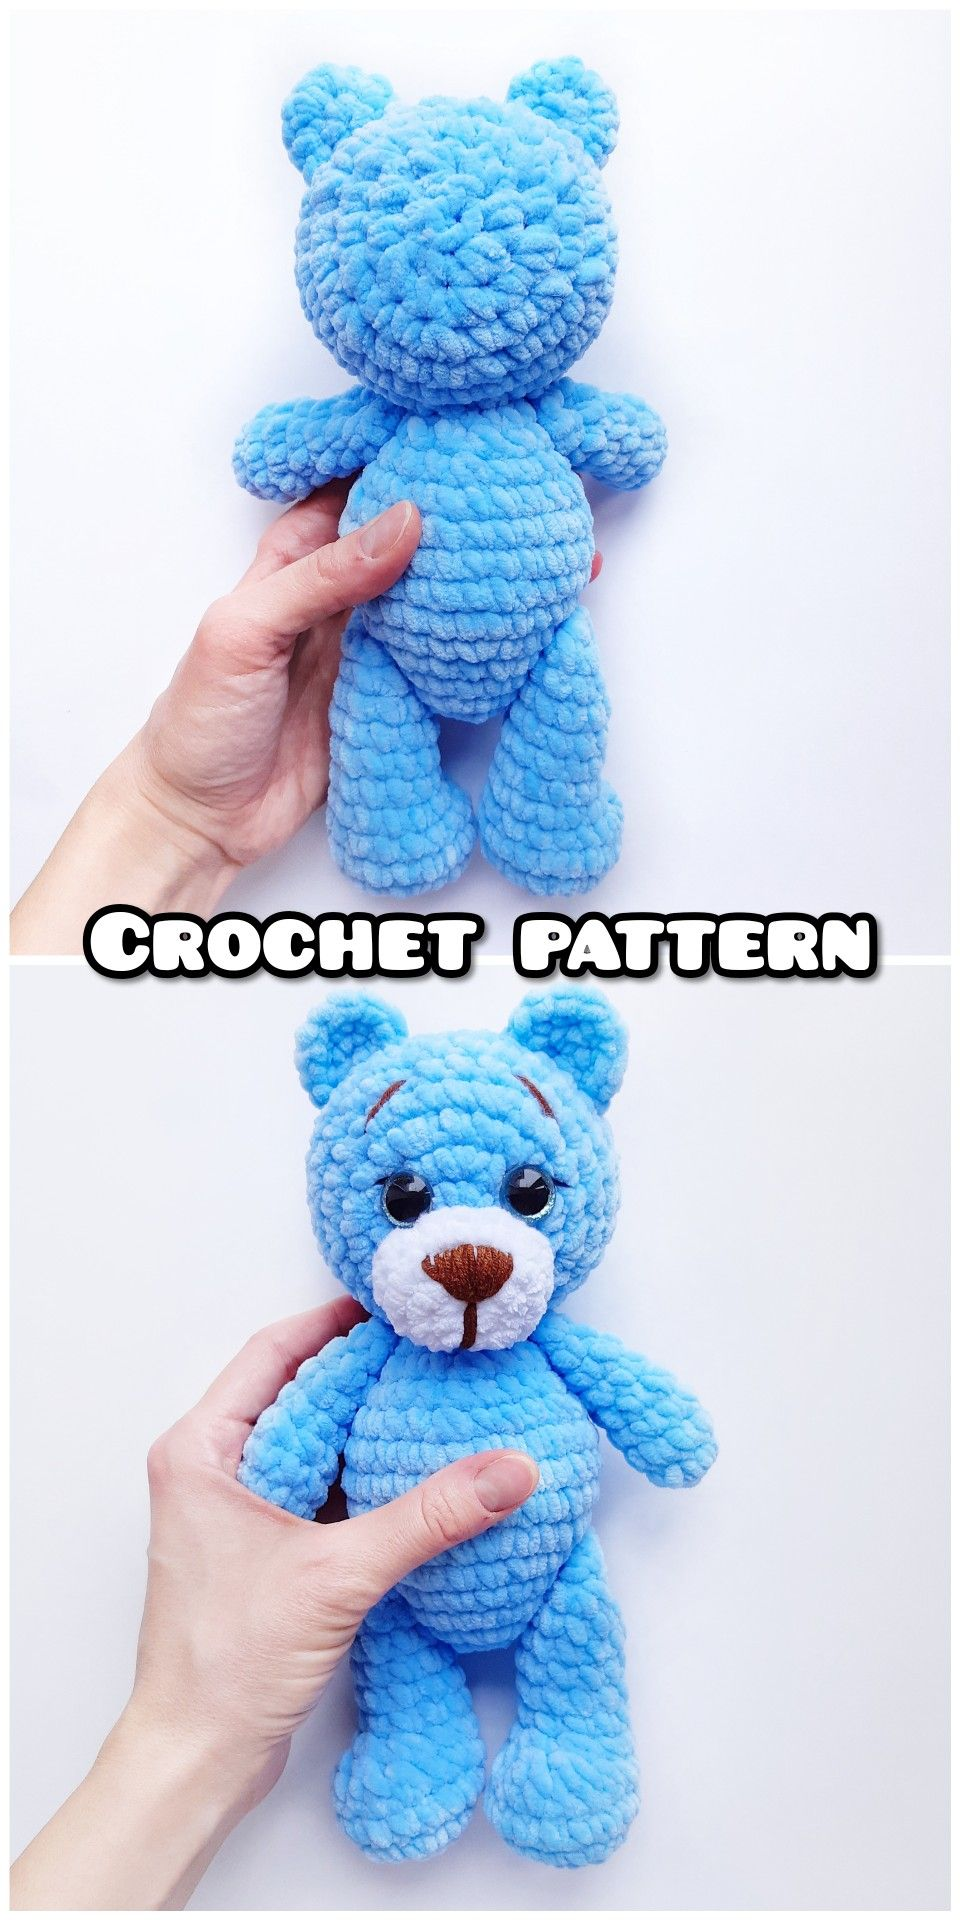 CROCHET PATTERN bear toy – Amigurumi pattern teddy bear – crocheted toy Pattern in English – Crochet animal – Pdf Plush tutorial – Knit toy